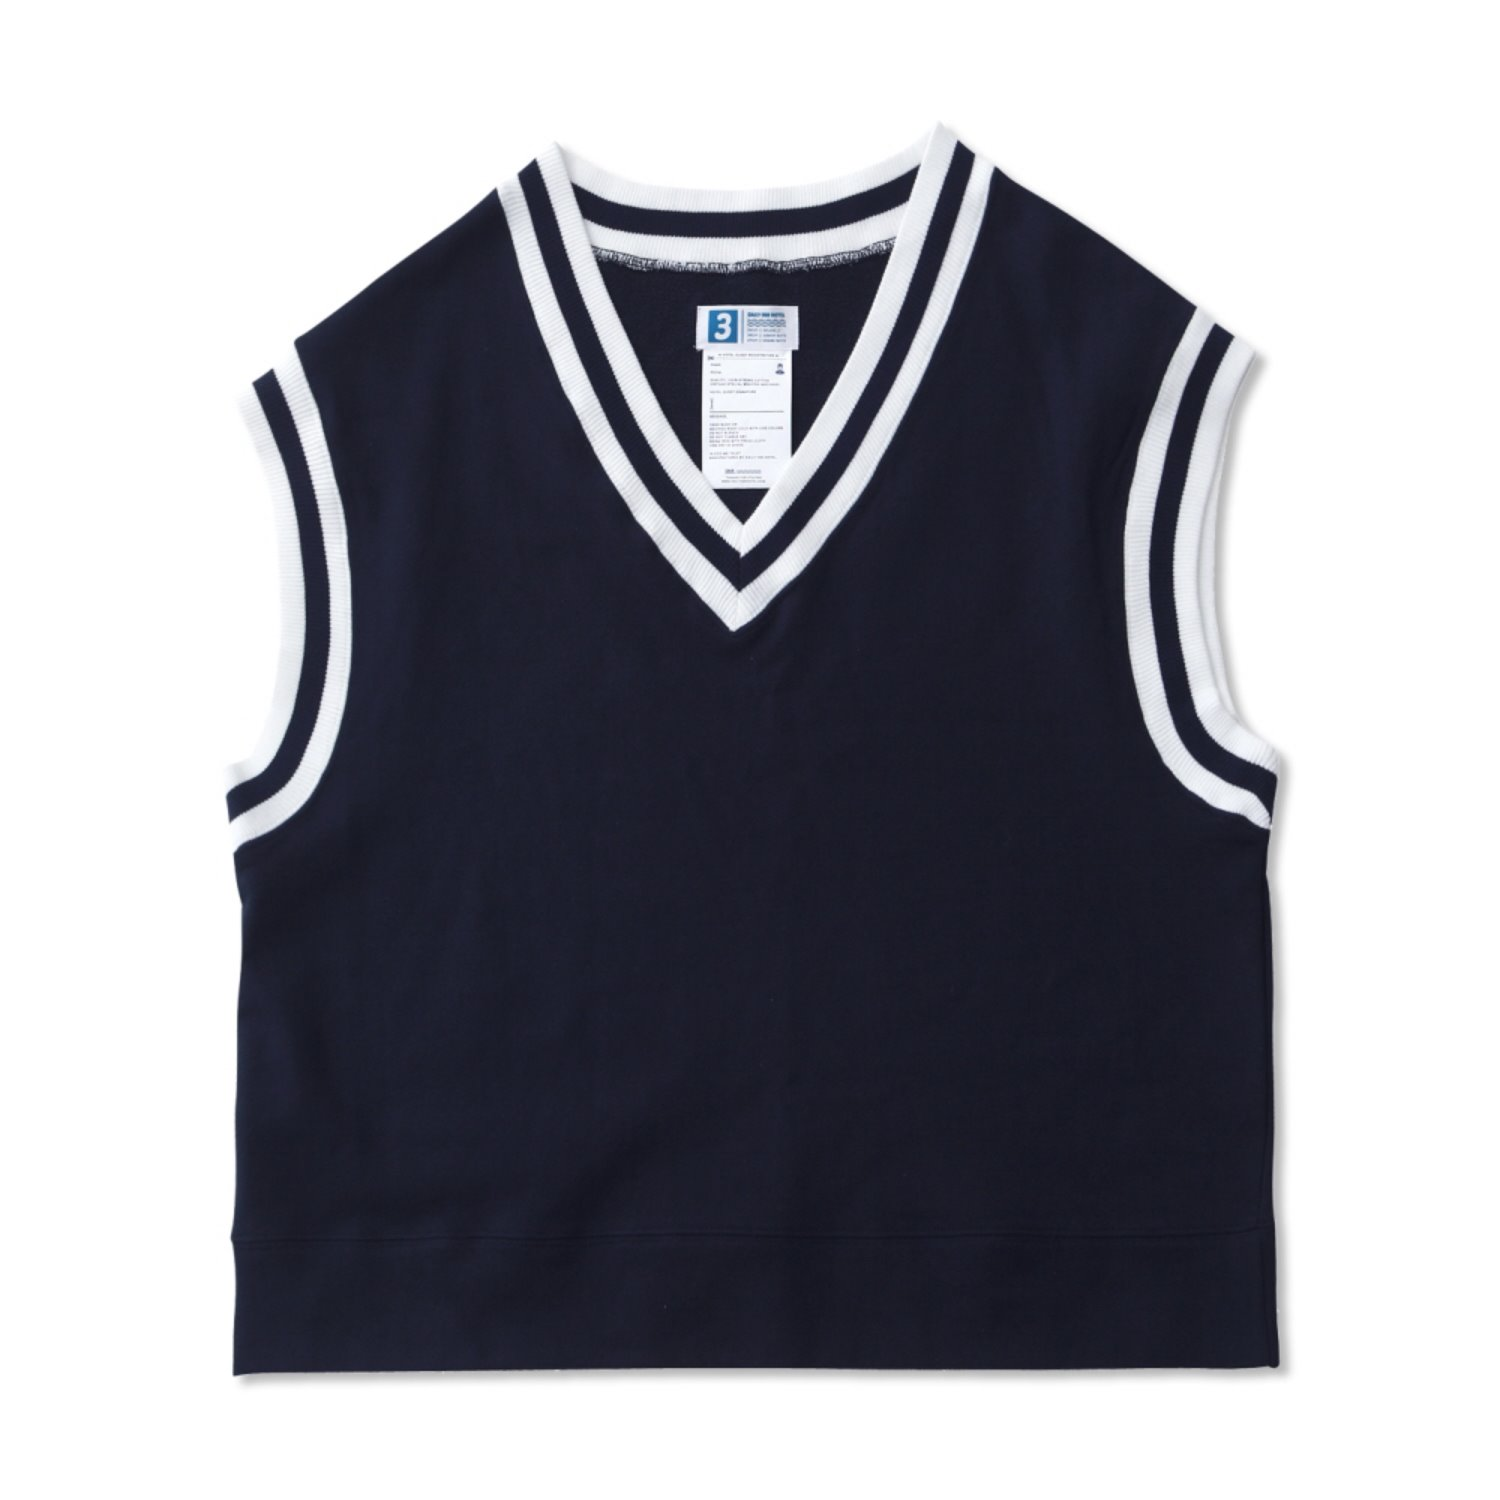 Lobby Boy Oversized Uniform Cotton Vest (Navy)